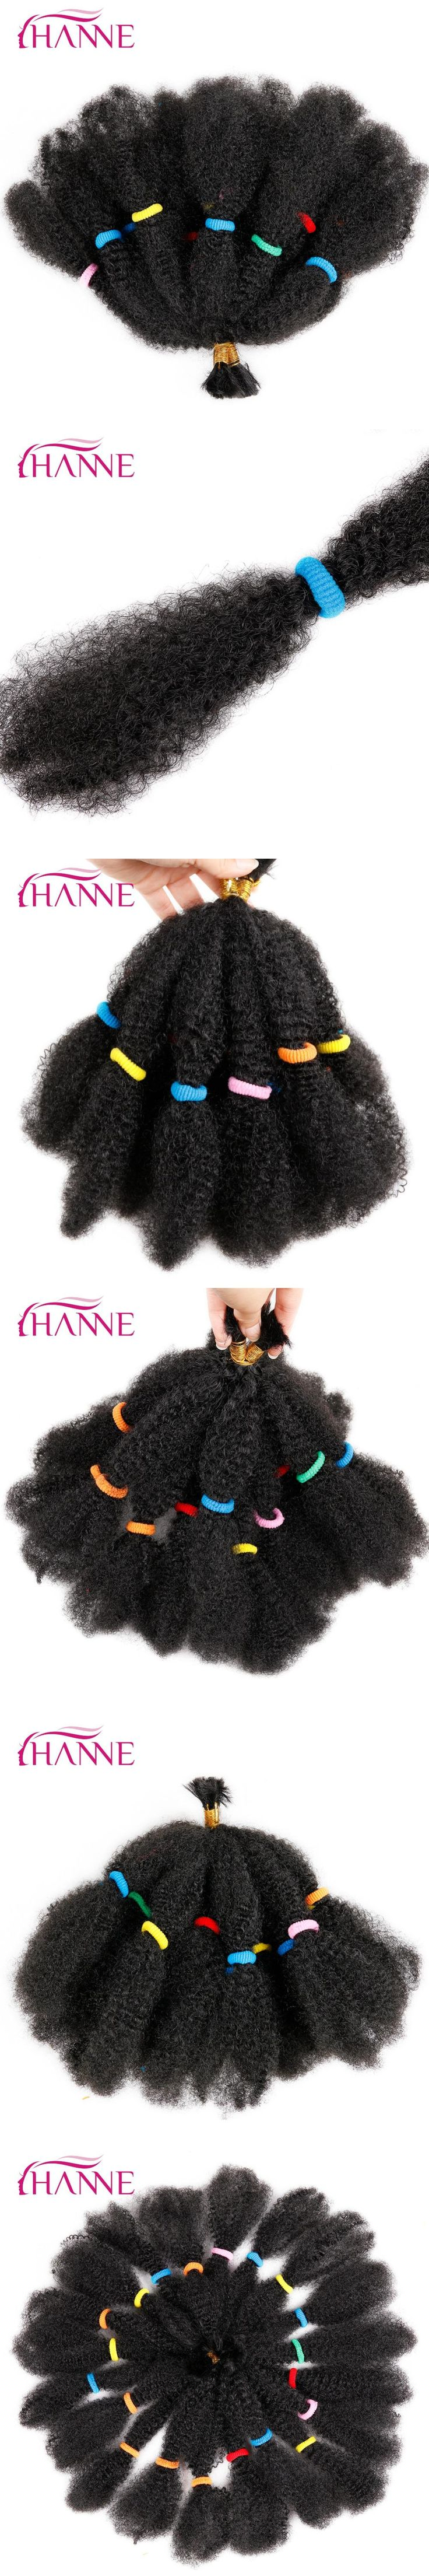 HANNE Bulk Hair Small Afro Kinky Curly Extensions 12Inch Black Or Ombre Mixed 1B#BUG Pre Braided Hair Extension Synthetic Weave